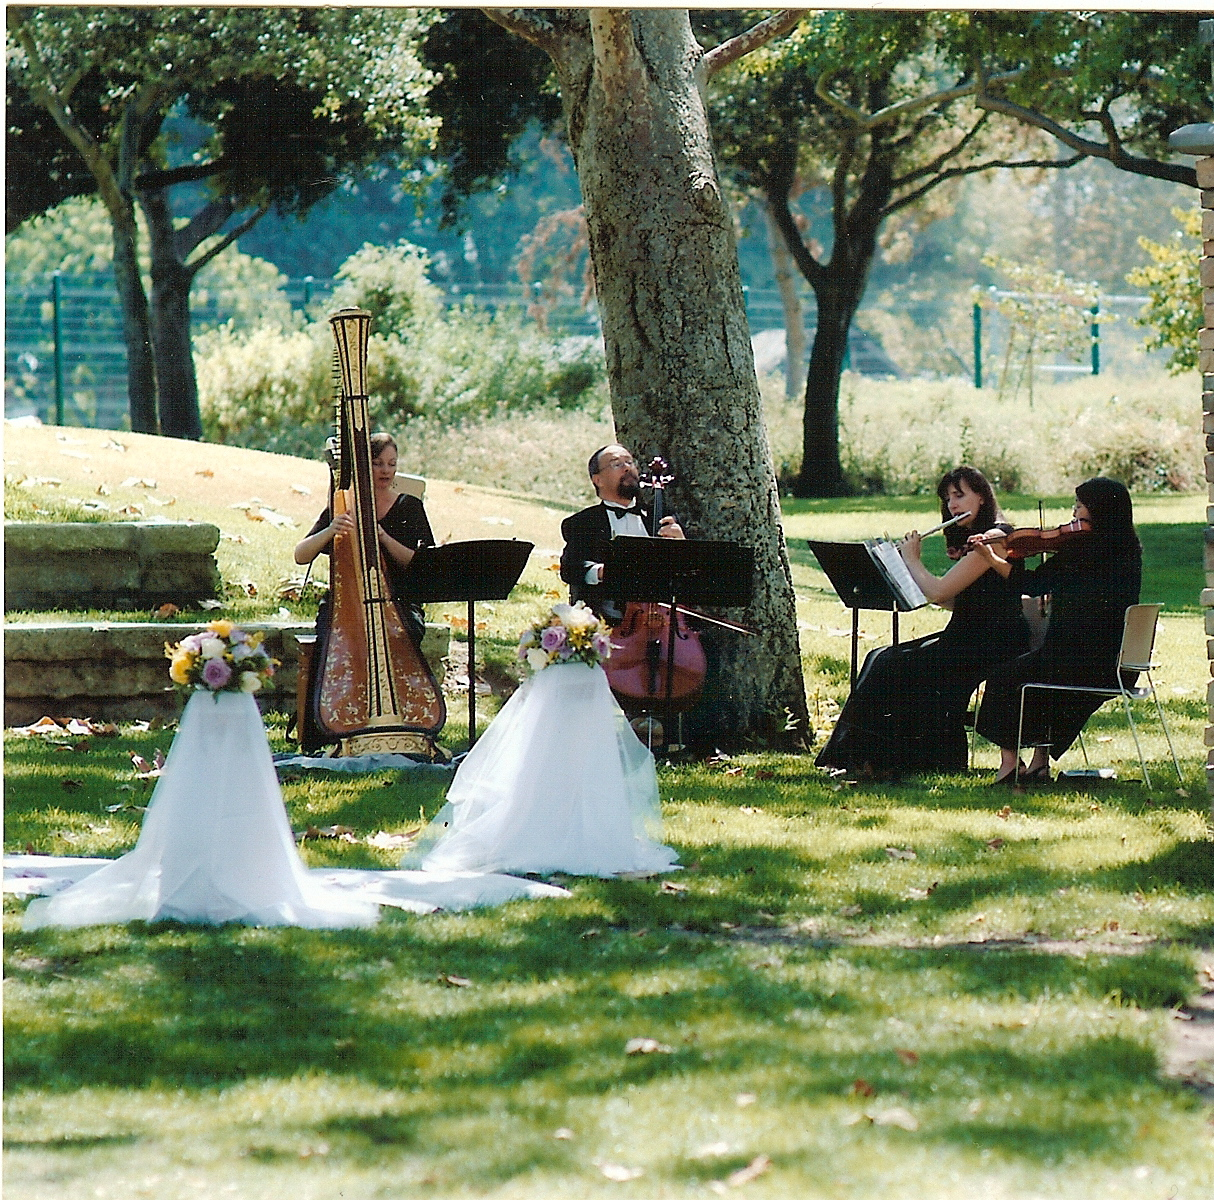 Elegant Music - Live Music and DJ Dance Music for Weddings and Parties in Los Angeles & Southern CA.